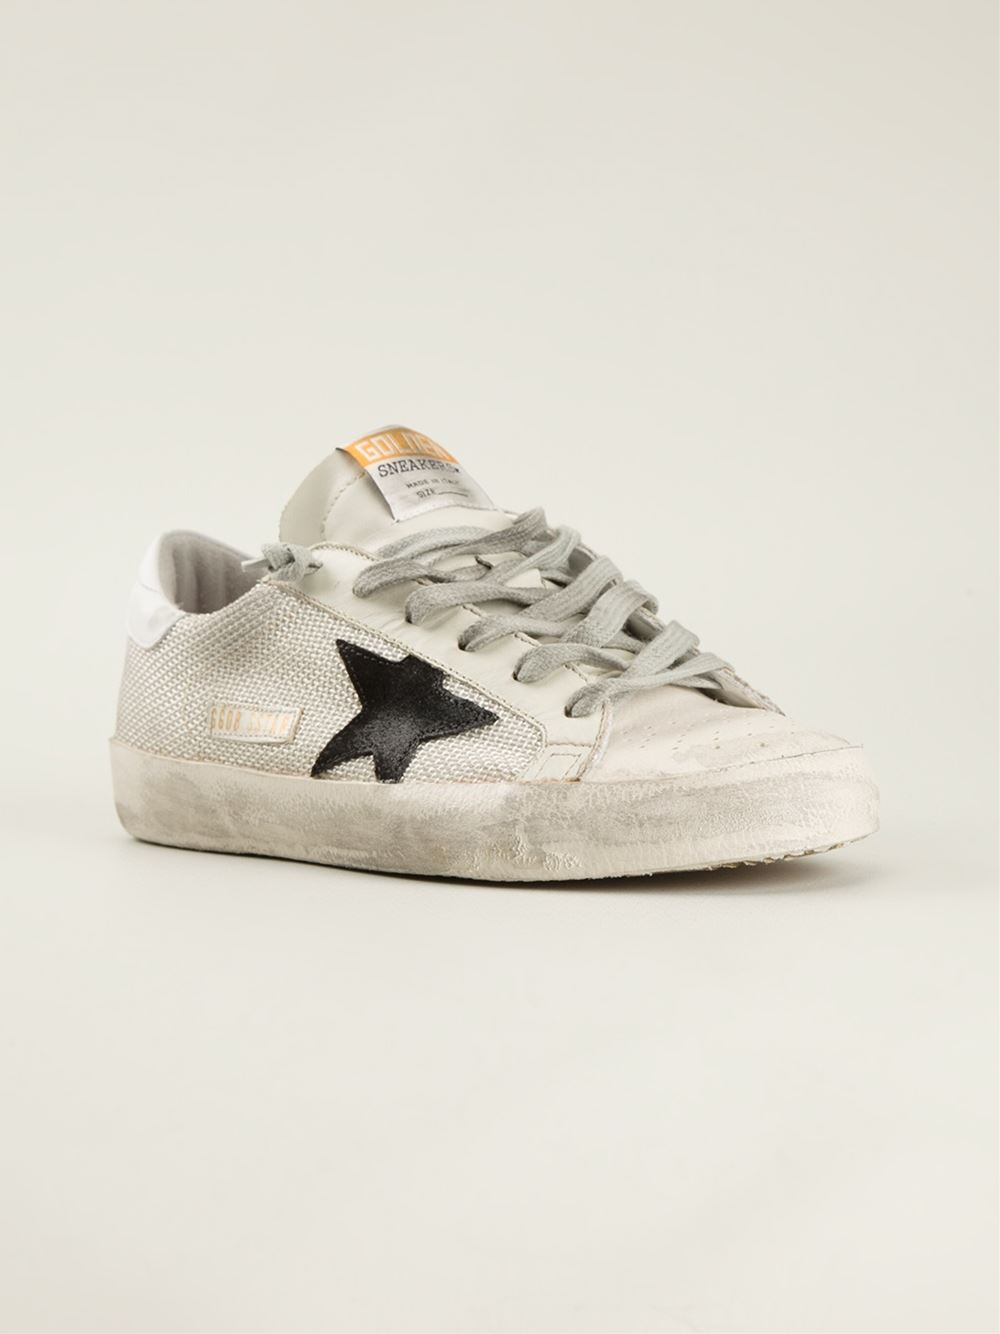 Golden Goose Deluxe Brand star patchwork sneakers clearance 2014 new gWwDHXg9